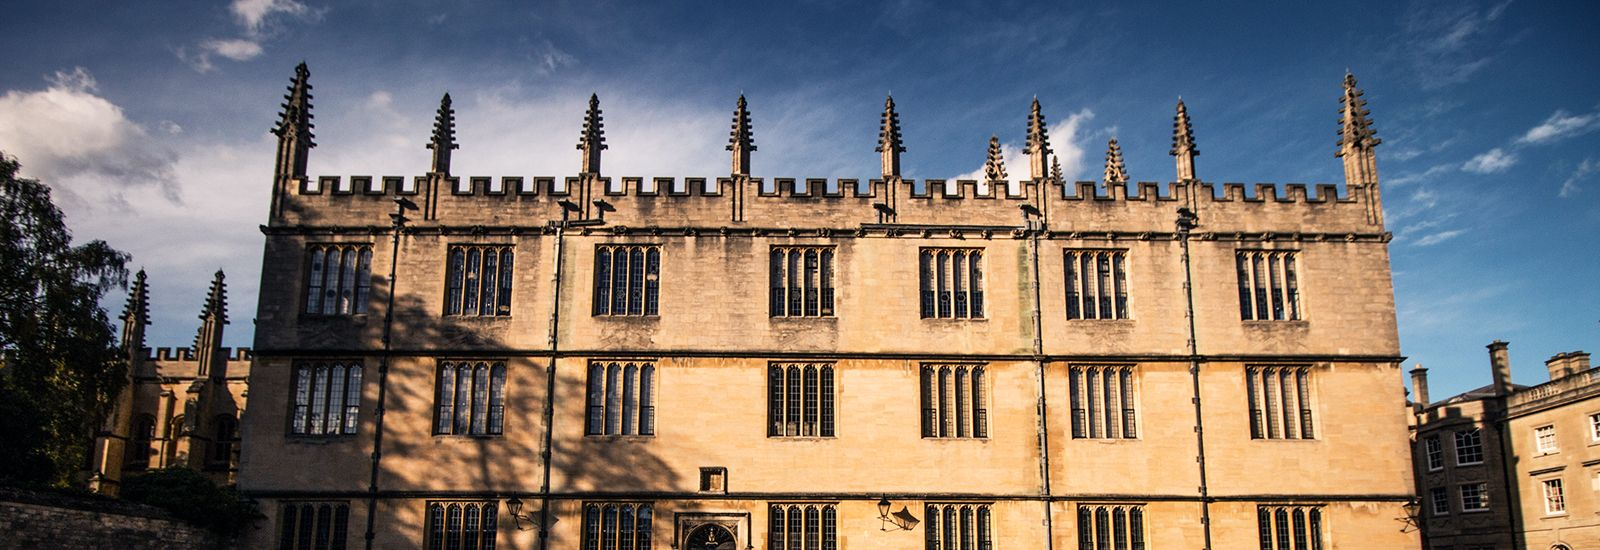 The side of the Bodleian Library against a blue sky